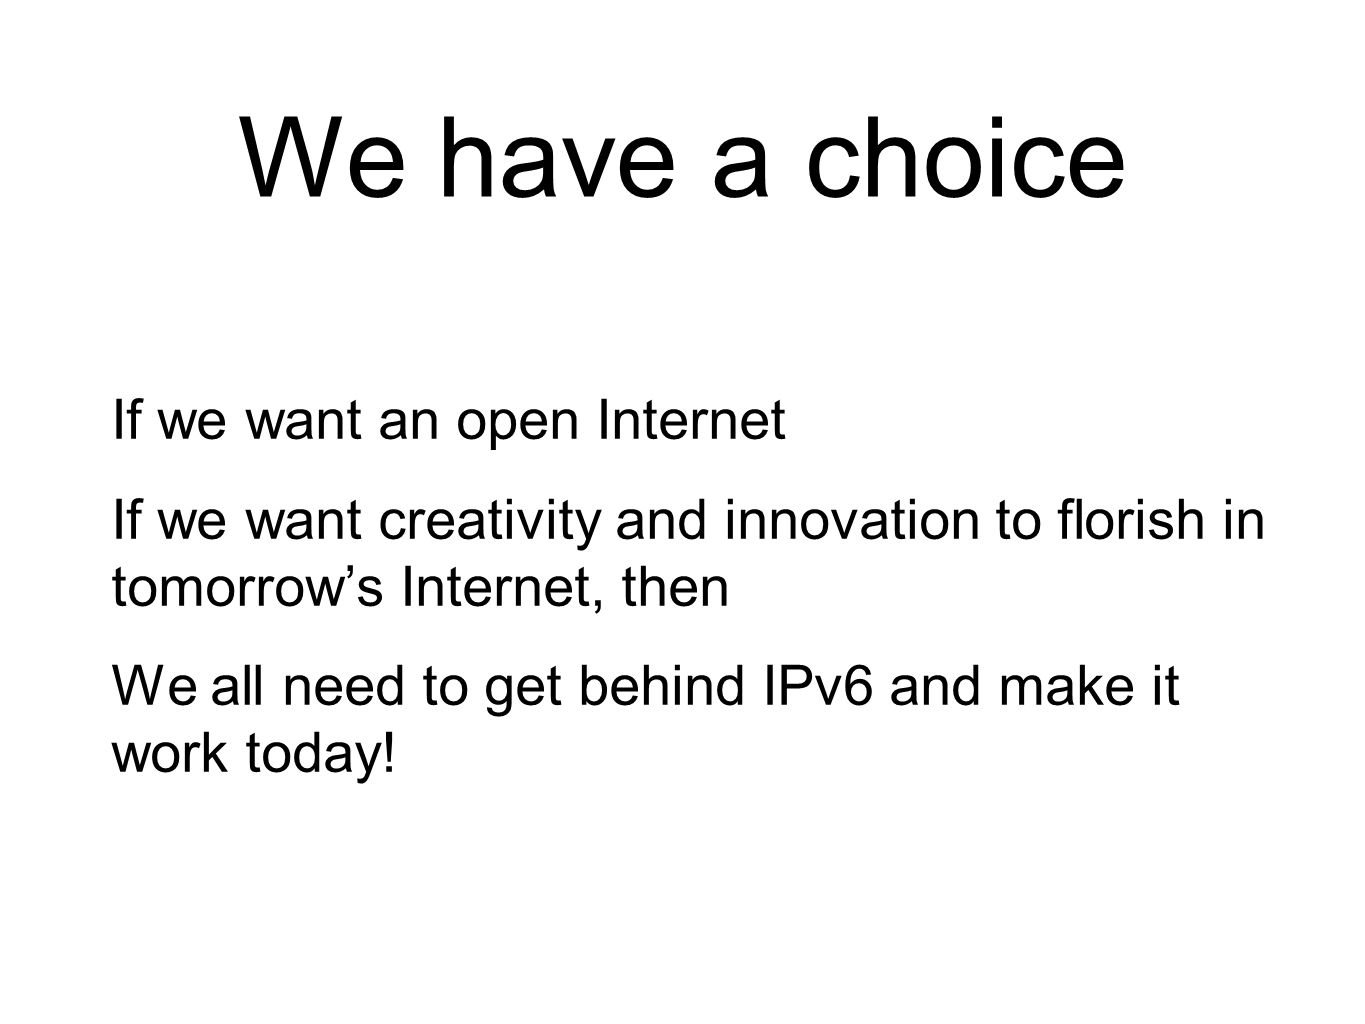 We have a choice If we want an open Internet If we want creativity and innovation to florish in tomorrow's Internet, then We all need to get behind IPv6 and make it work today!